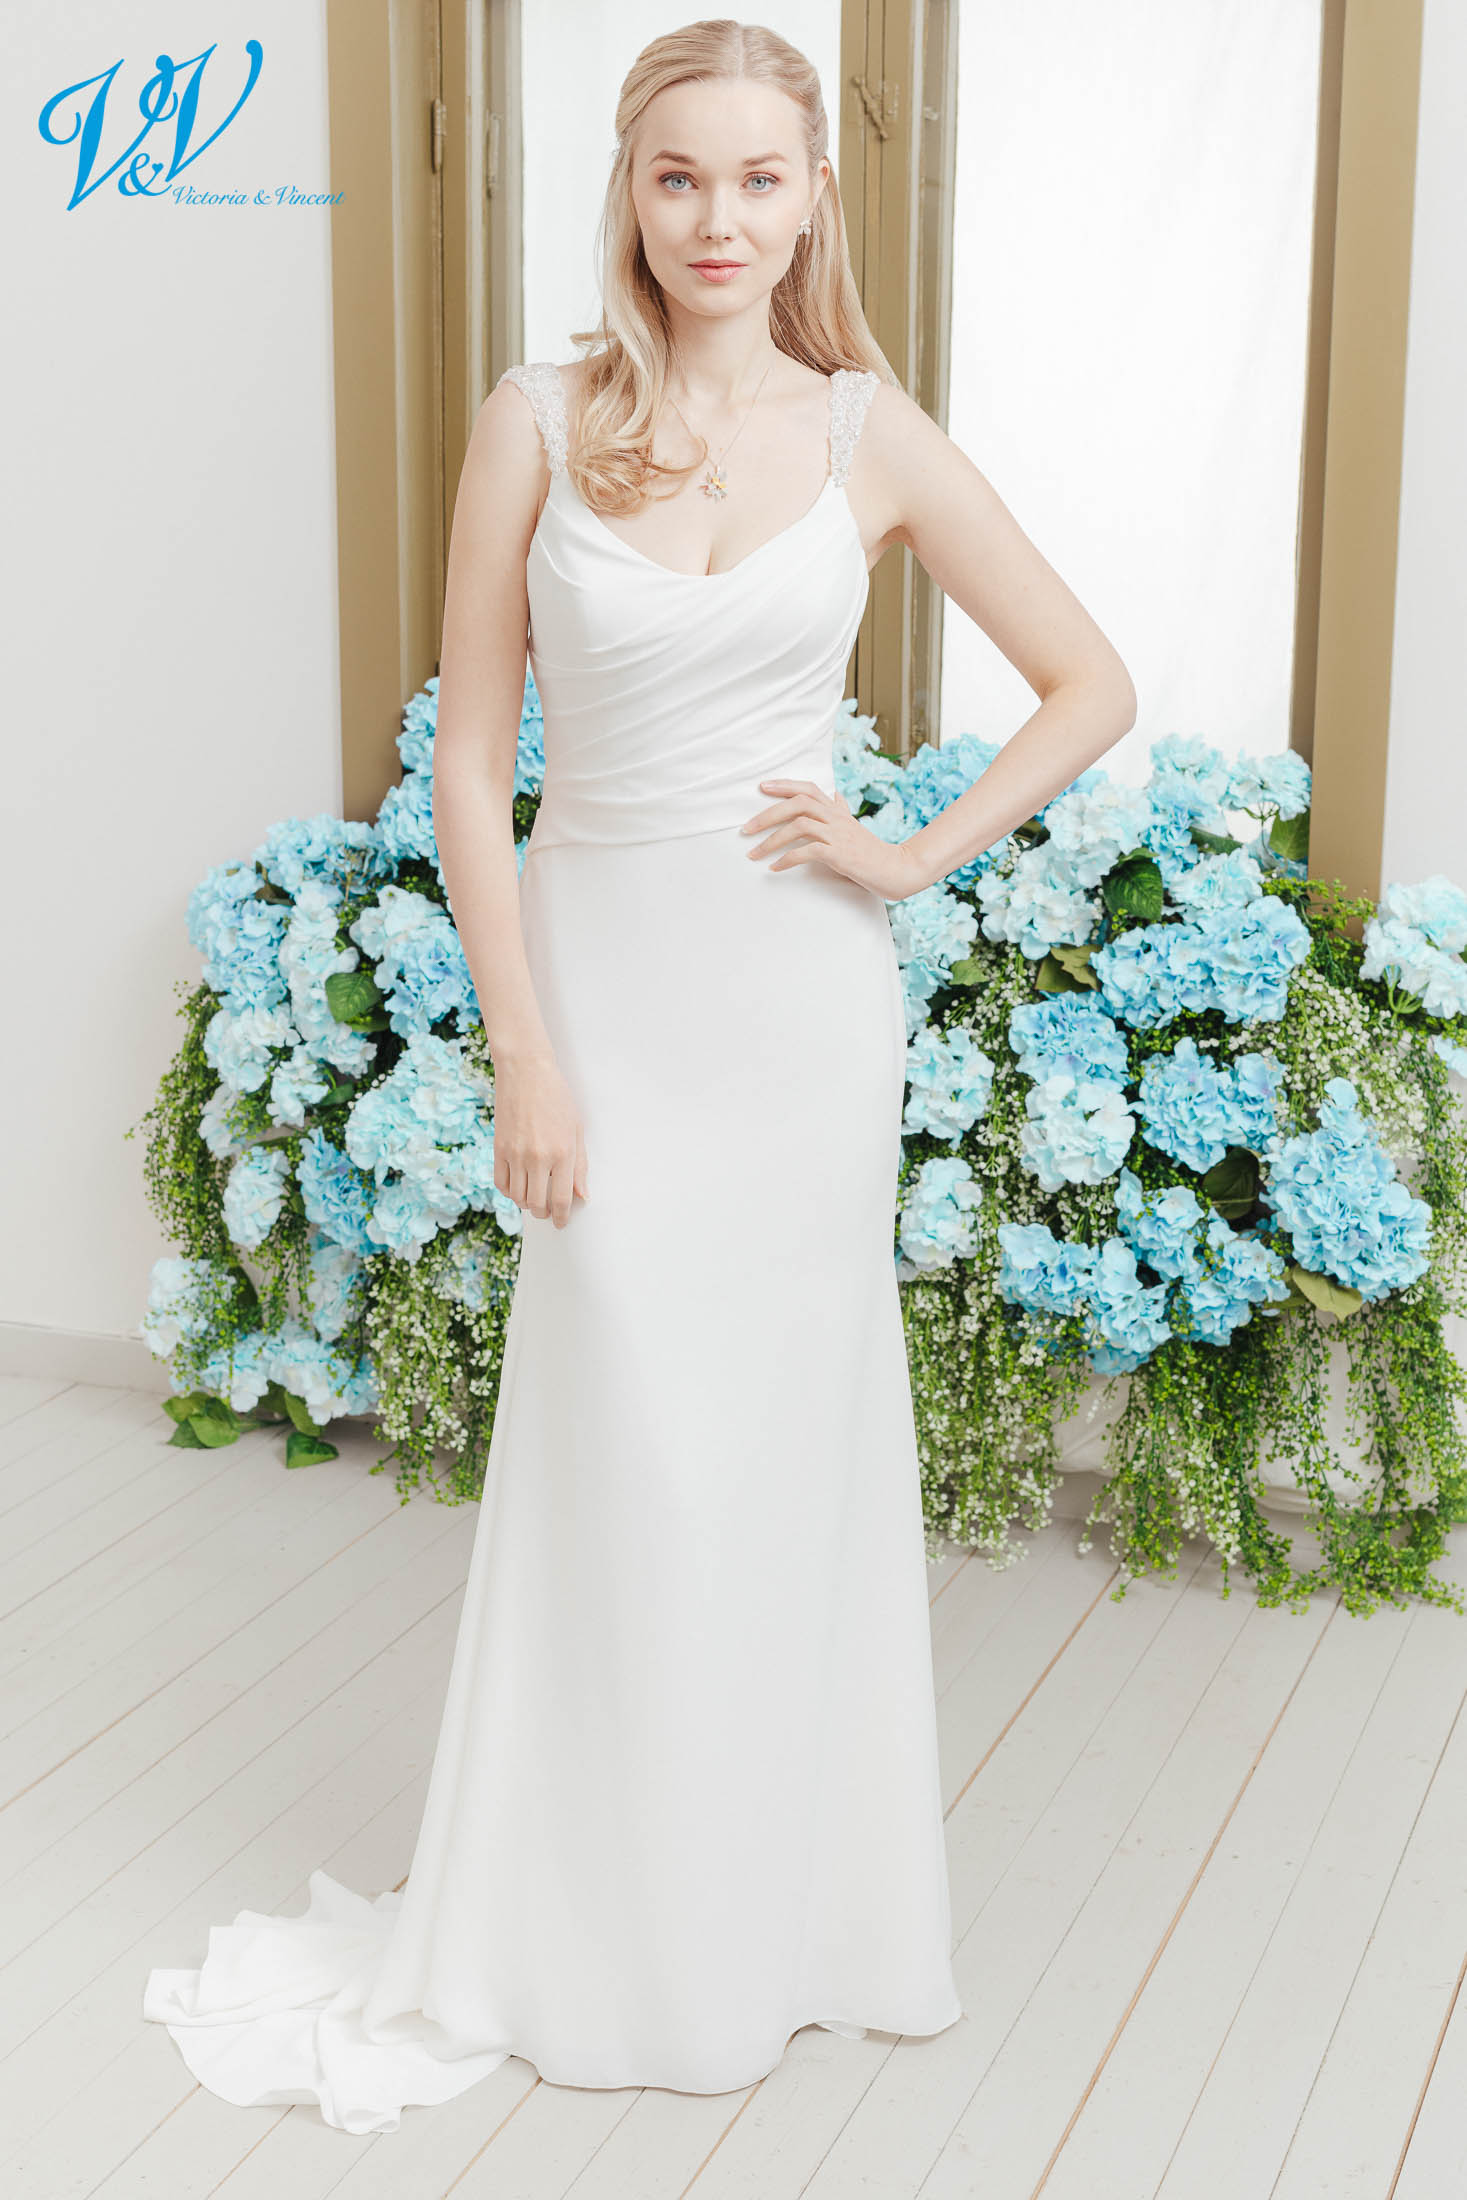 The most affordable premium quality mermaid wedding dress on the market. Made from high-quality crepe with sparkly shoulder straps. Color in the picture is ivory but this bridal gown is also available in white.